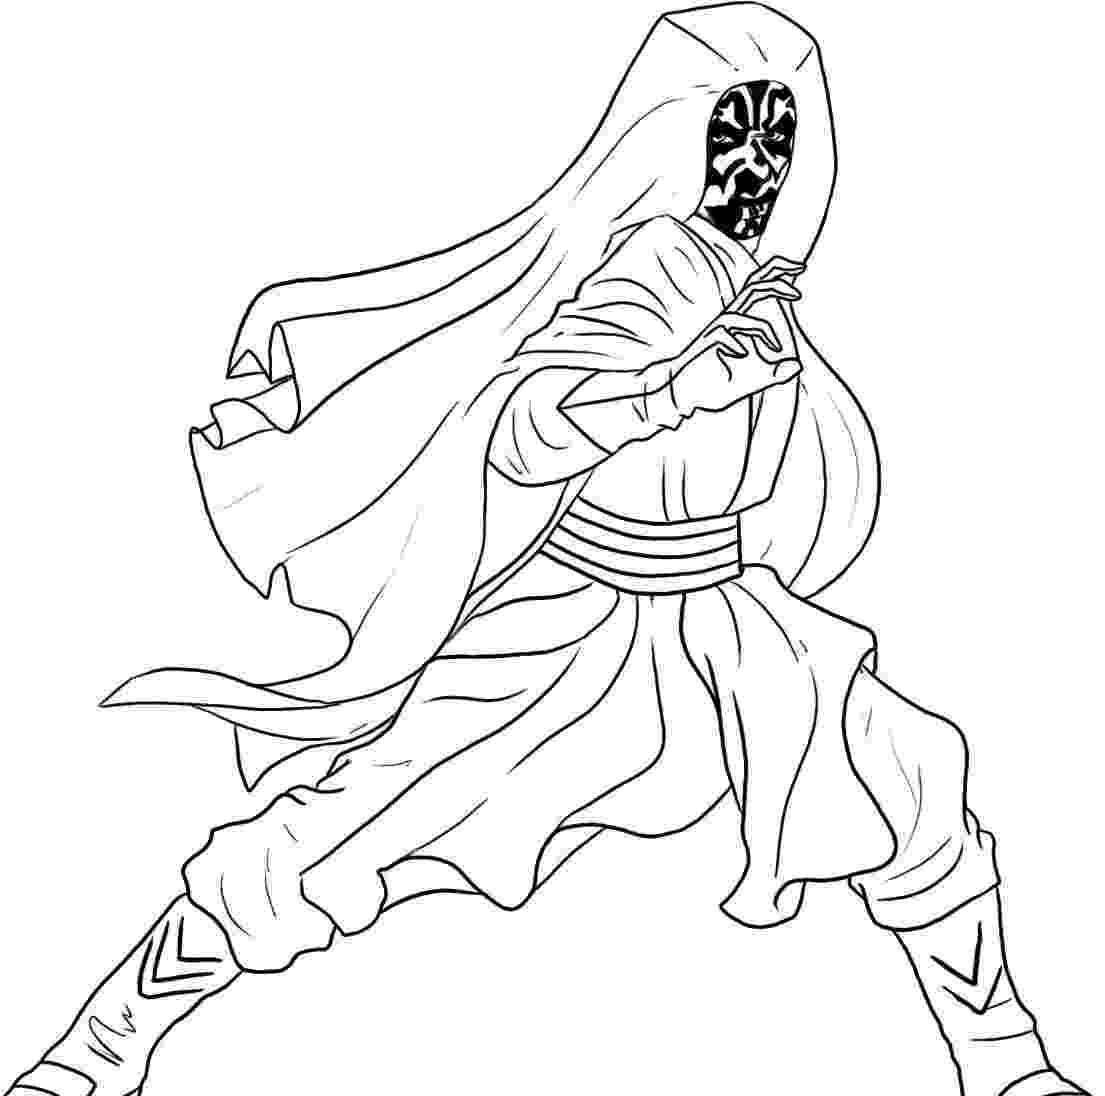 star wars characters coloring pages polkadots on parade star wars the force awakens coloring wars characters star coloring pages